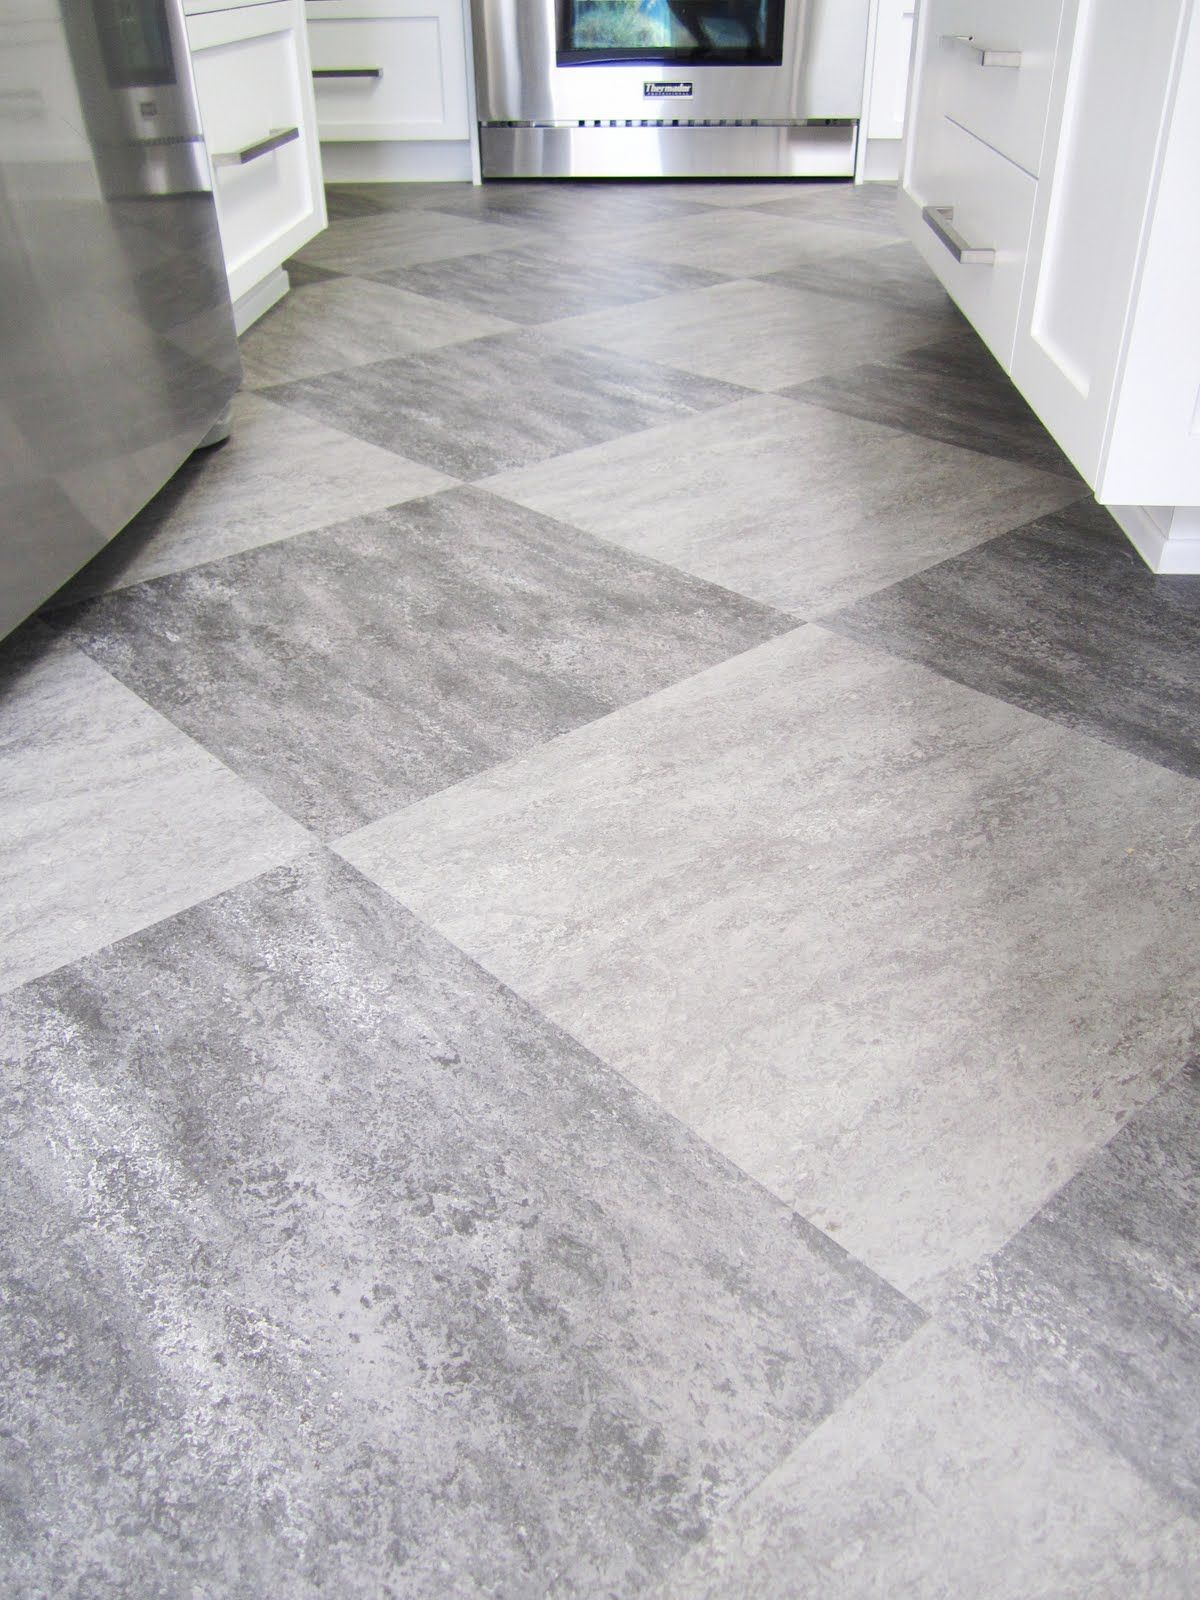 harlequin tile floors harlequin of grey on grey tiles is used